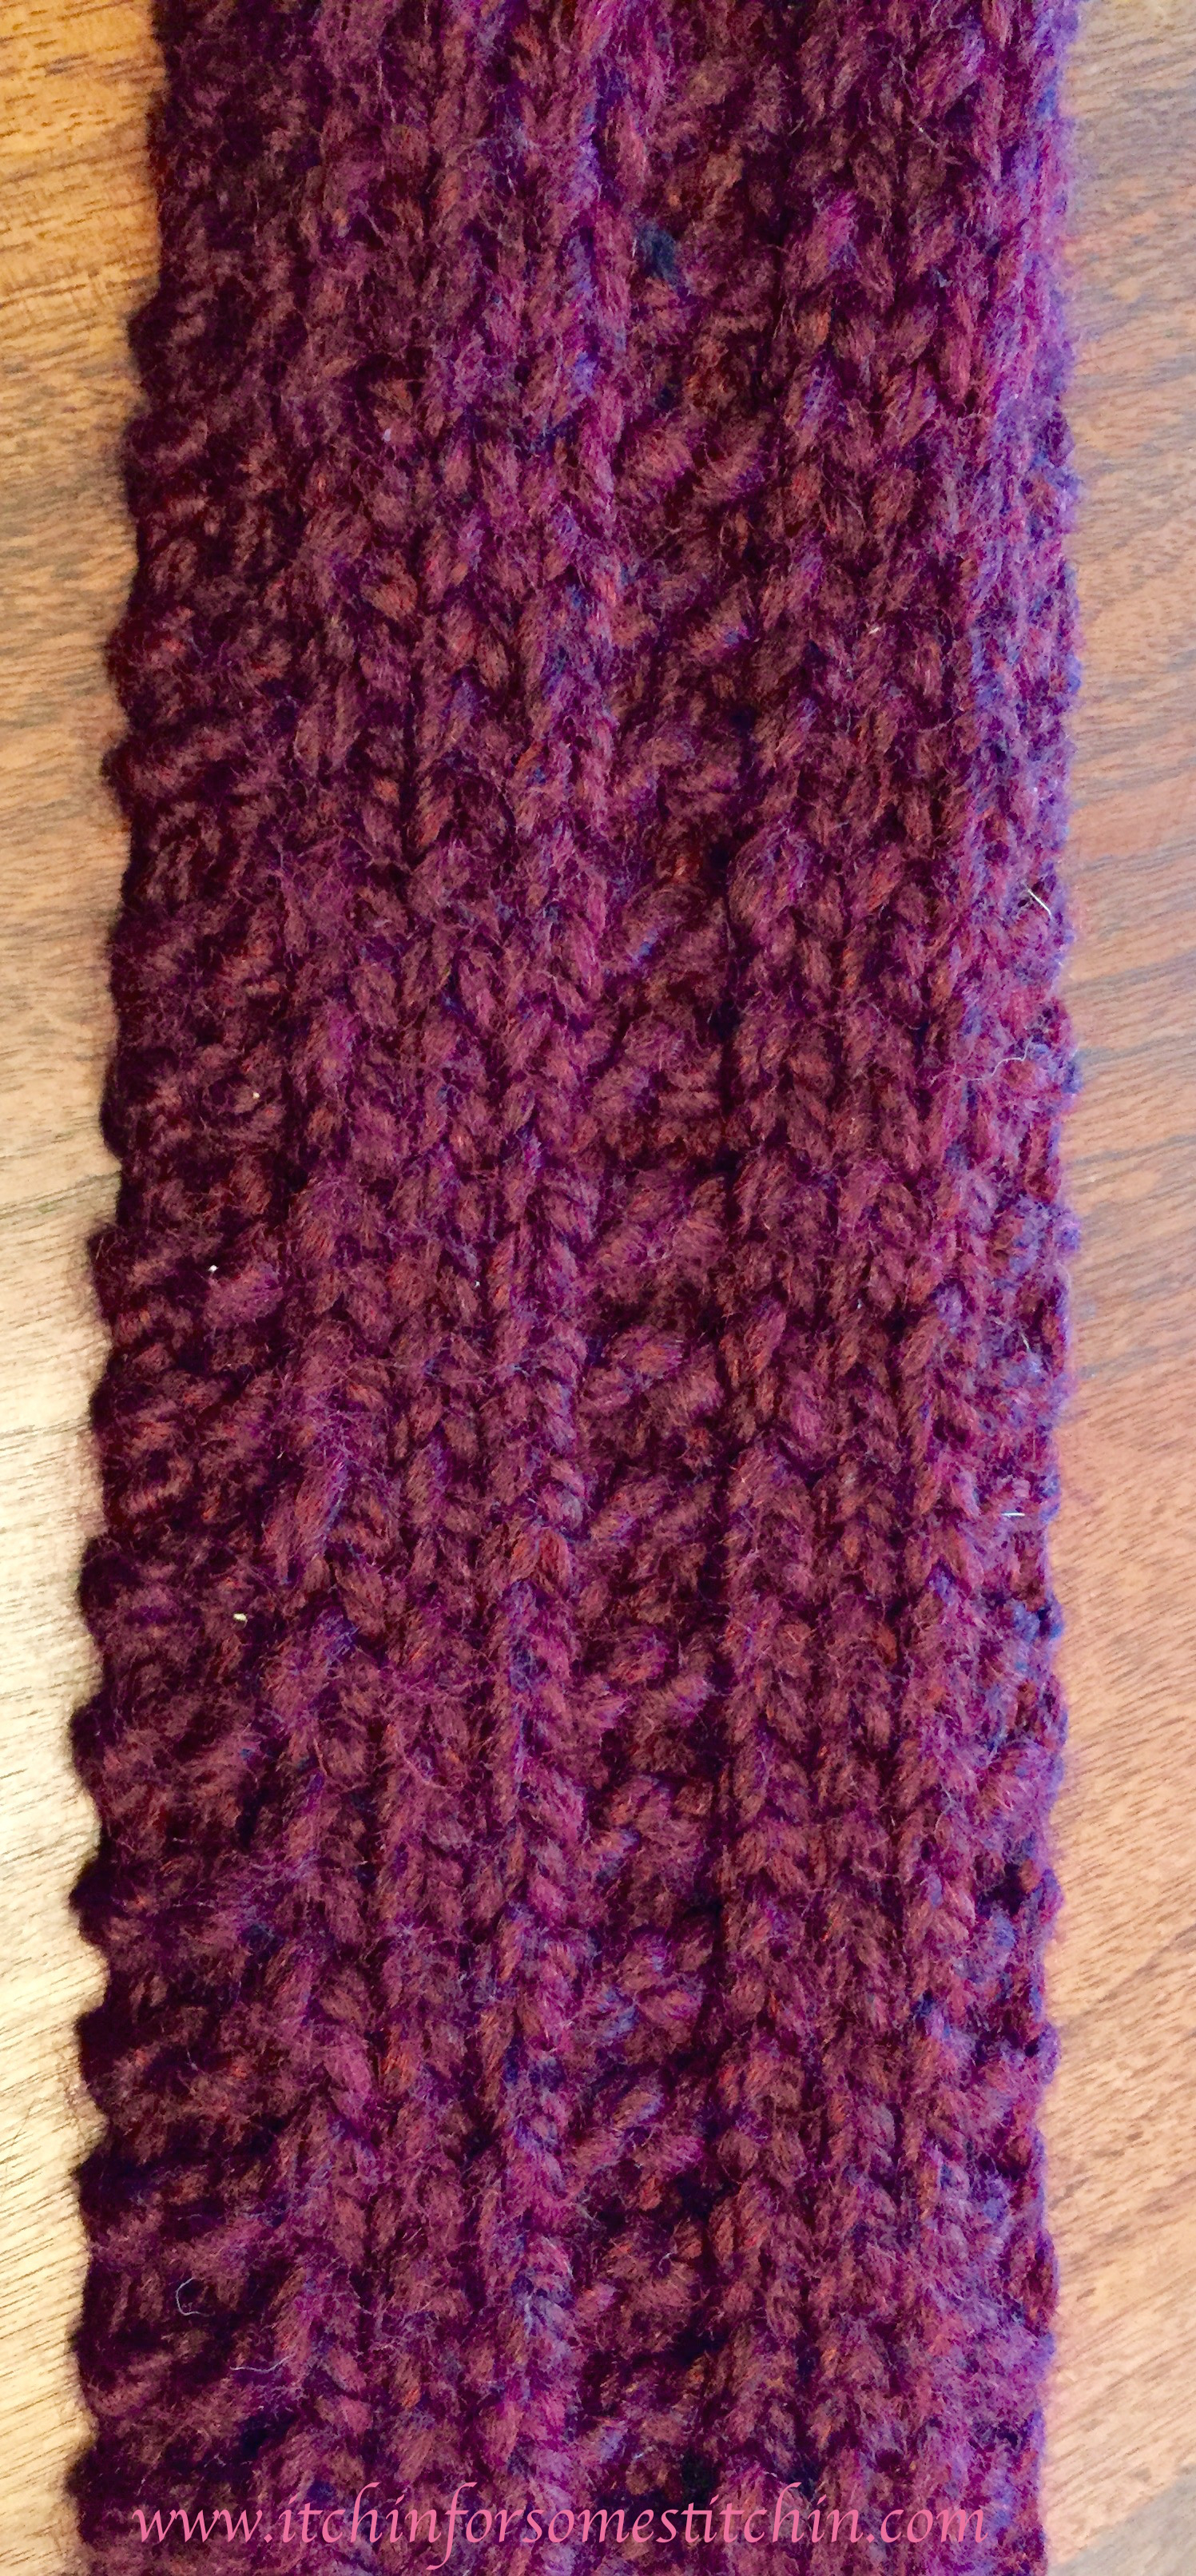 Basic Knitting Scarf Patterns Free Easy Knit Scarf Pattern Itchin For Some Stitchin